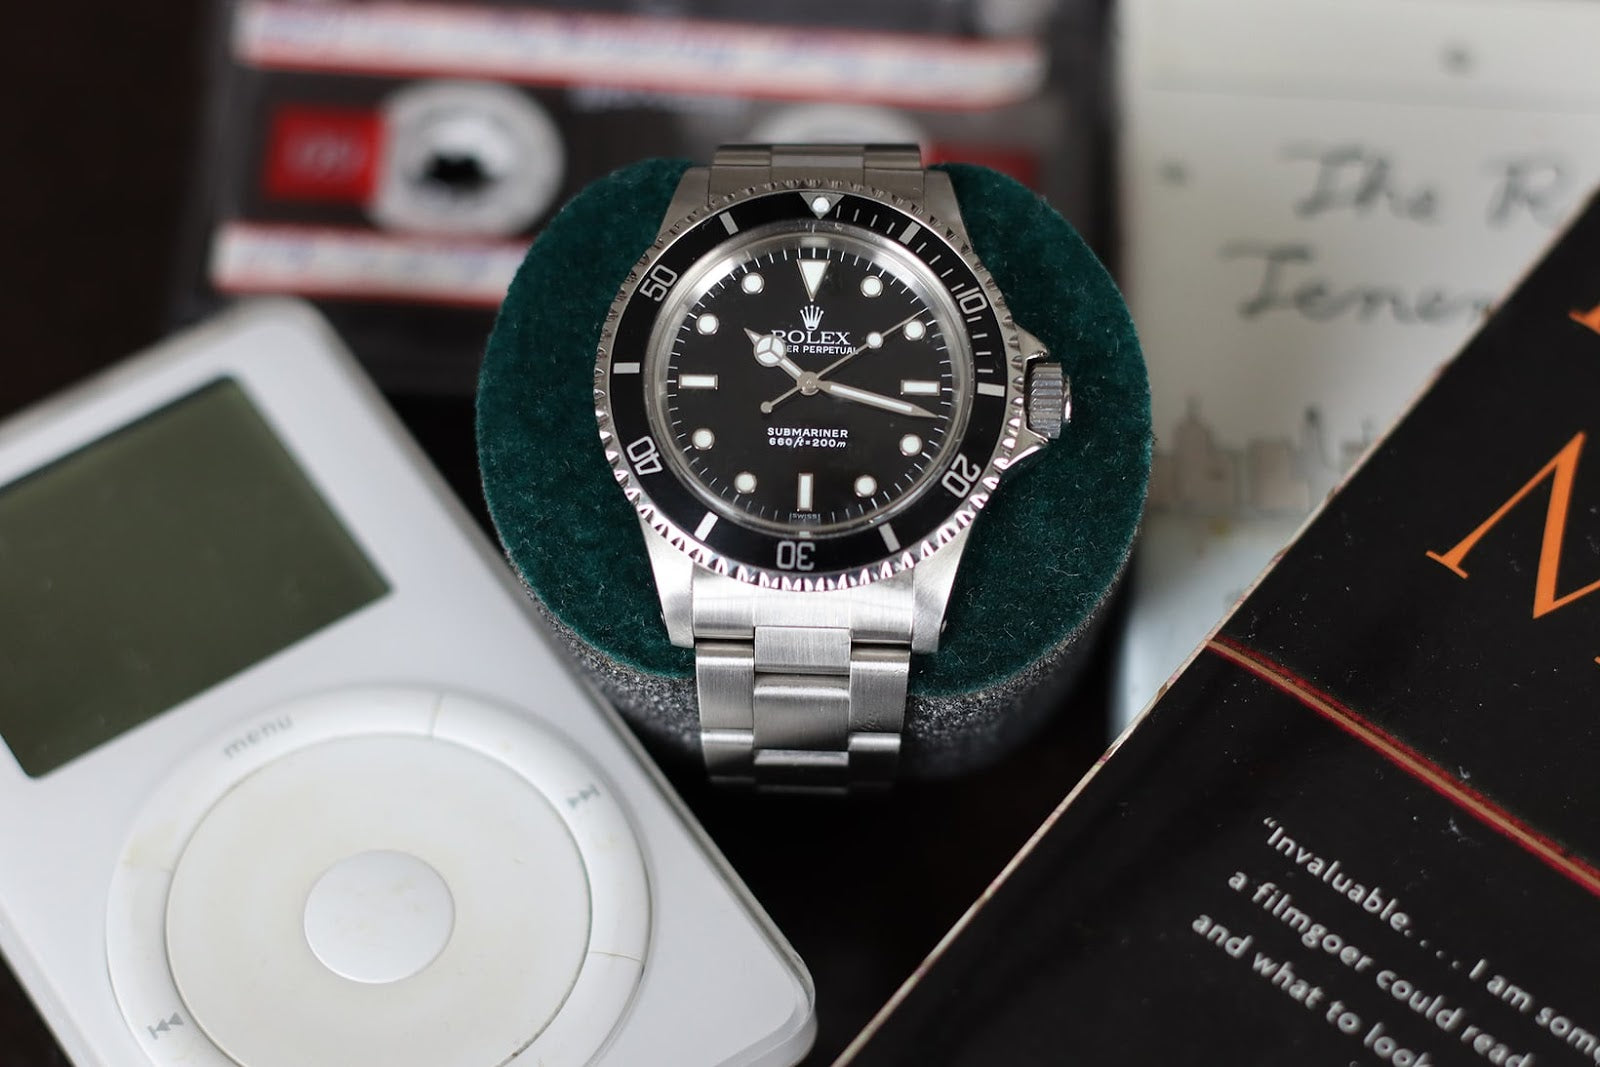 is a broken rolex worth anything or worth repairing?